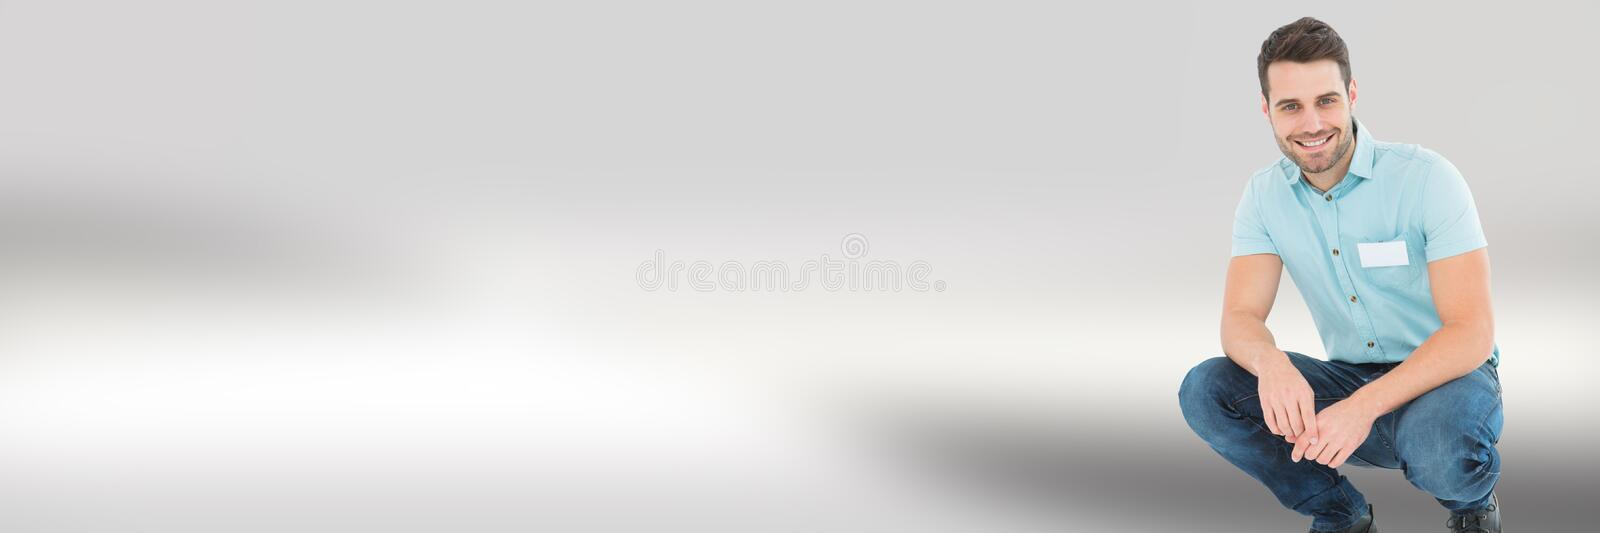 Working man in front of blurred background royalty free stock images